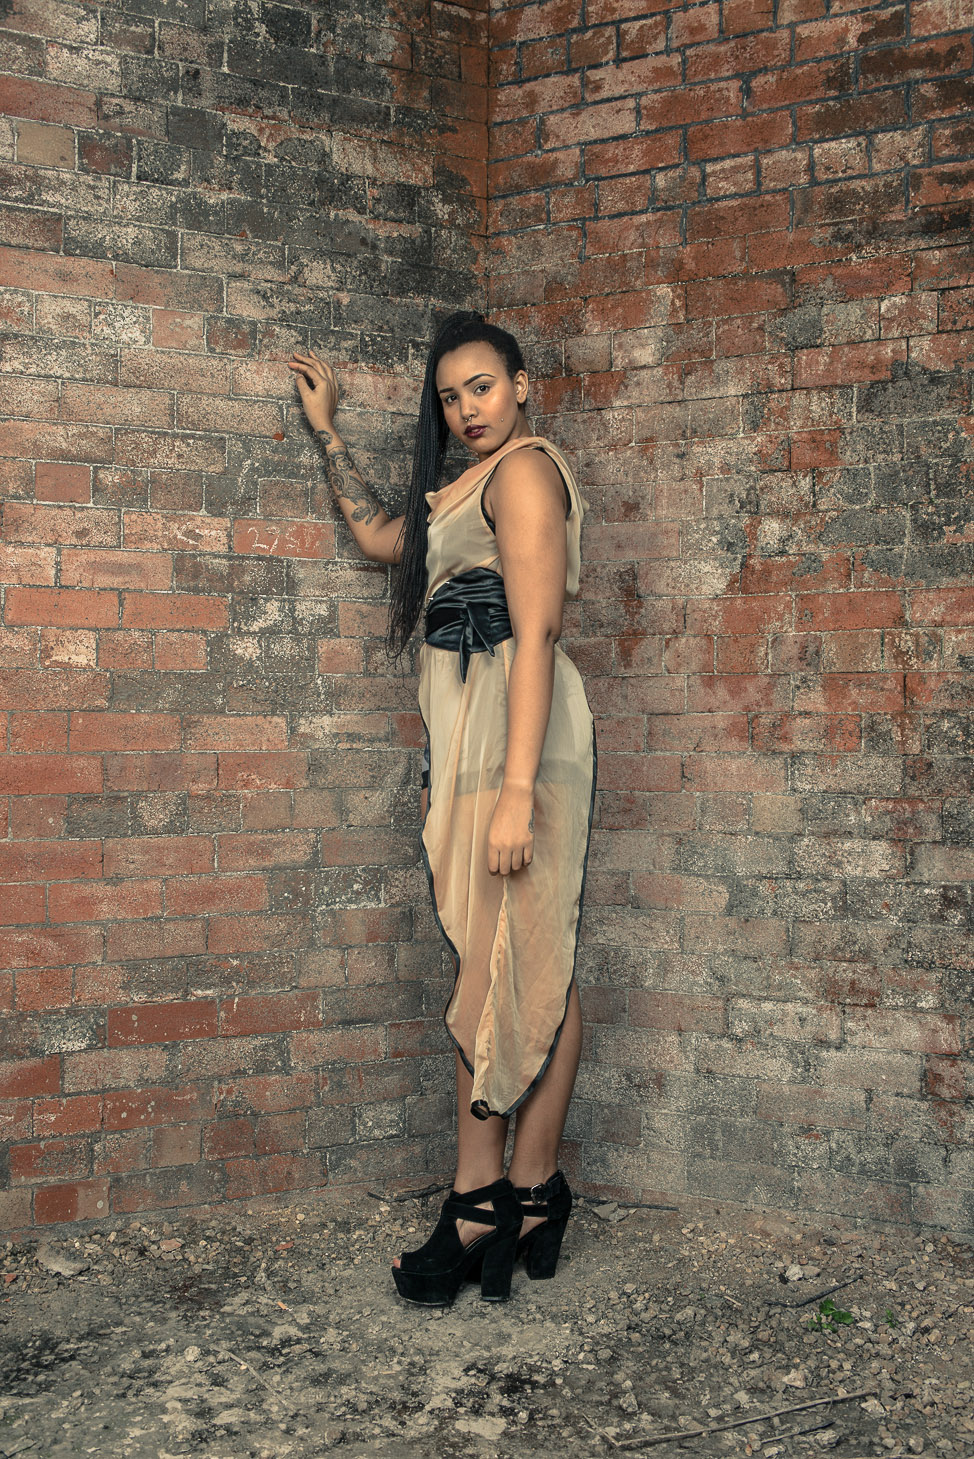 zaramia-ava-zaramiaava-leeds-fashion-designer-ethical-sustainable-tailored-minimalist-sheer-versatile-drape-top-gold-binding-belt-wrap-cowl-styling-womenswear-models-photoshoot-location-1